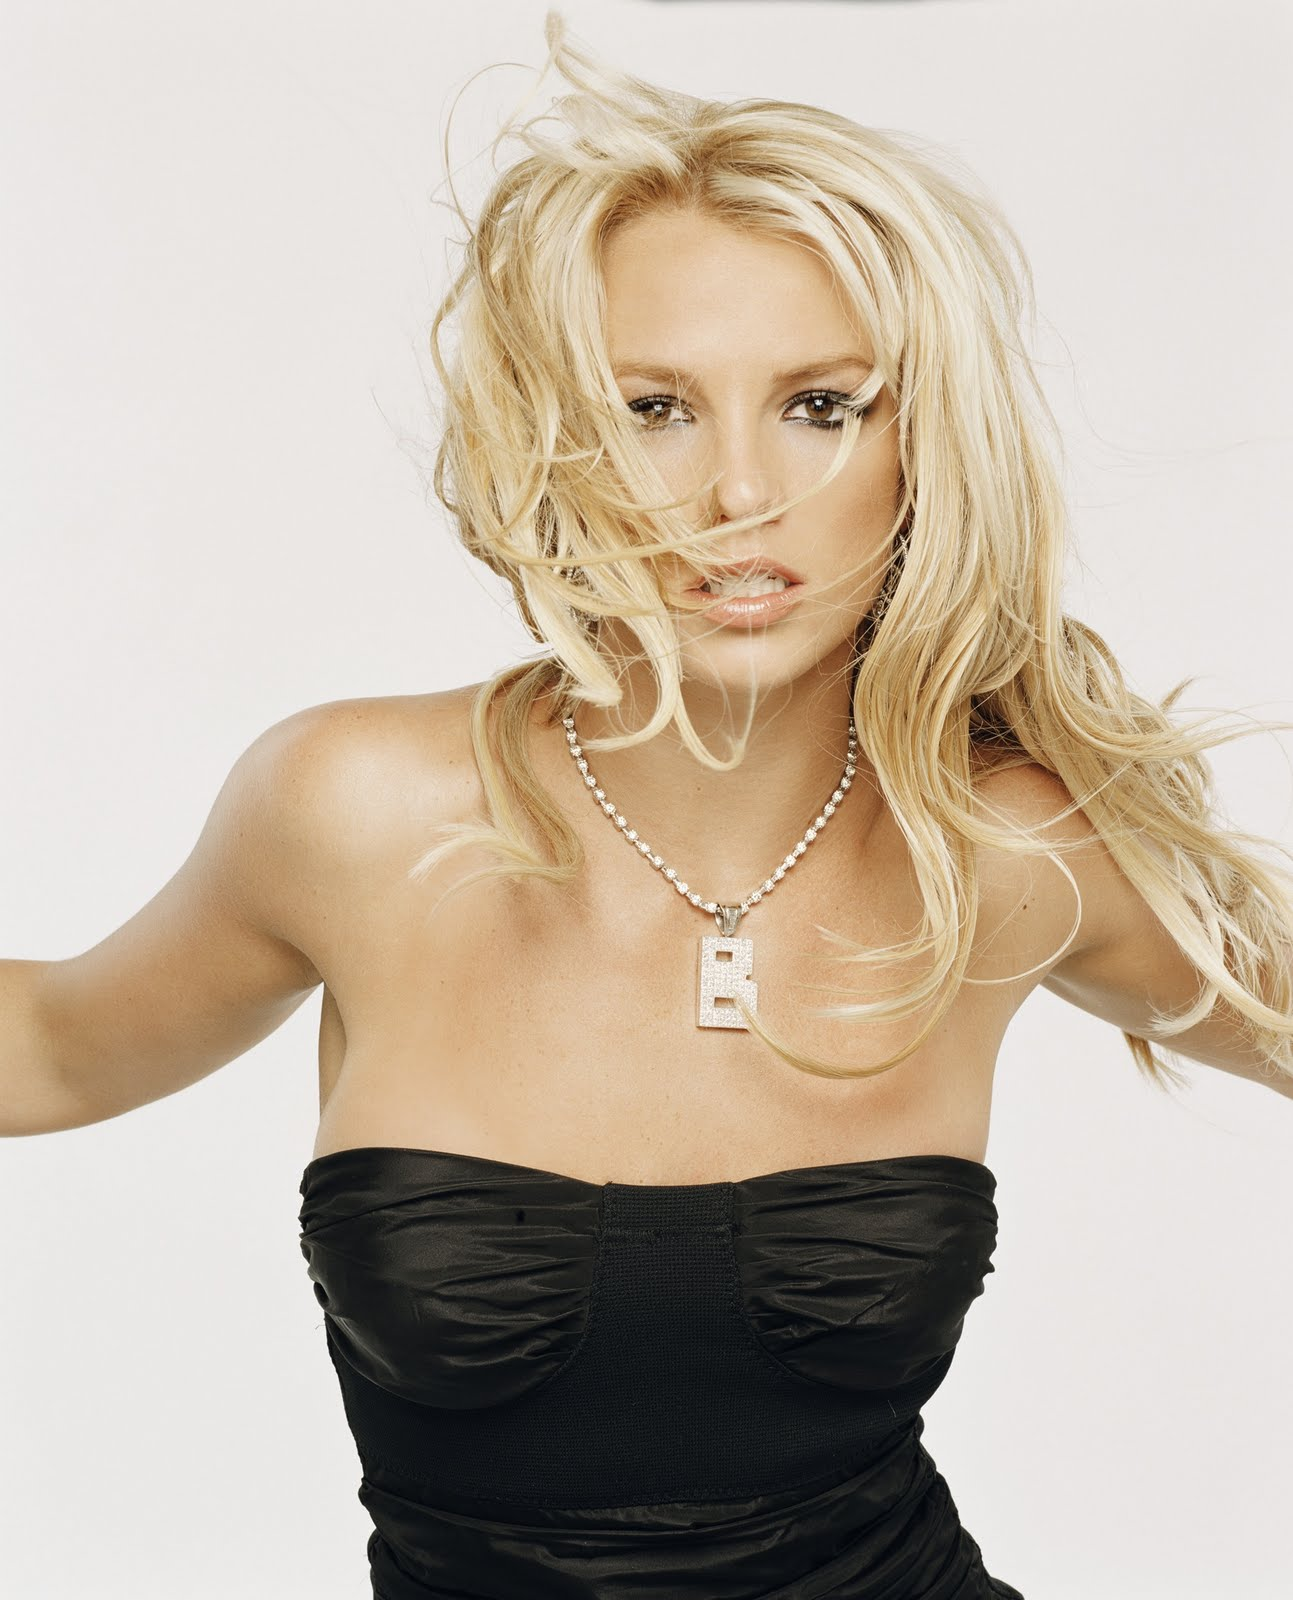 Britney Spears: Britney Spears Hot Photoshoot Britney